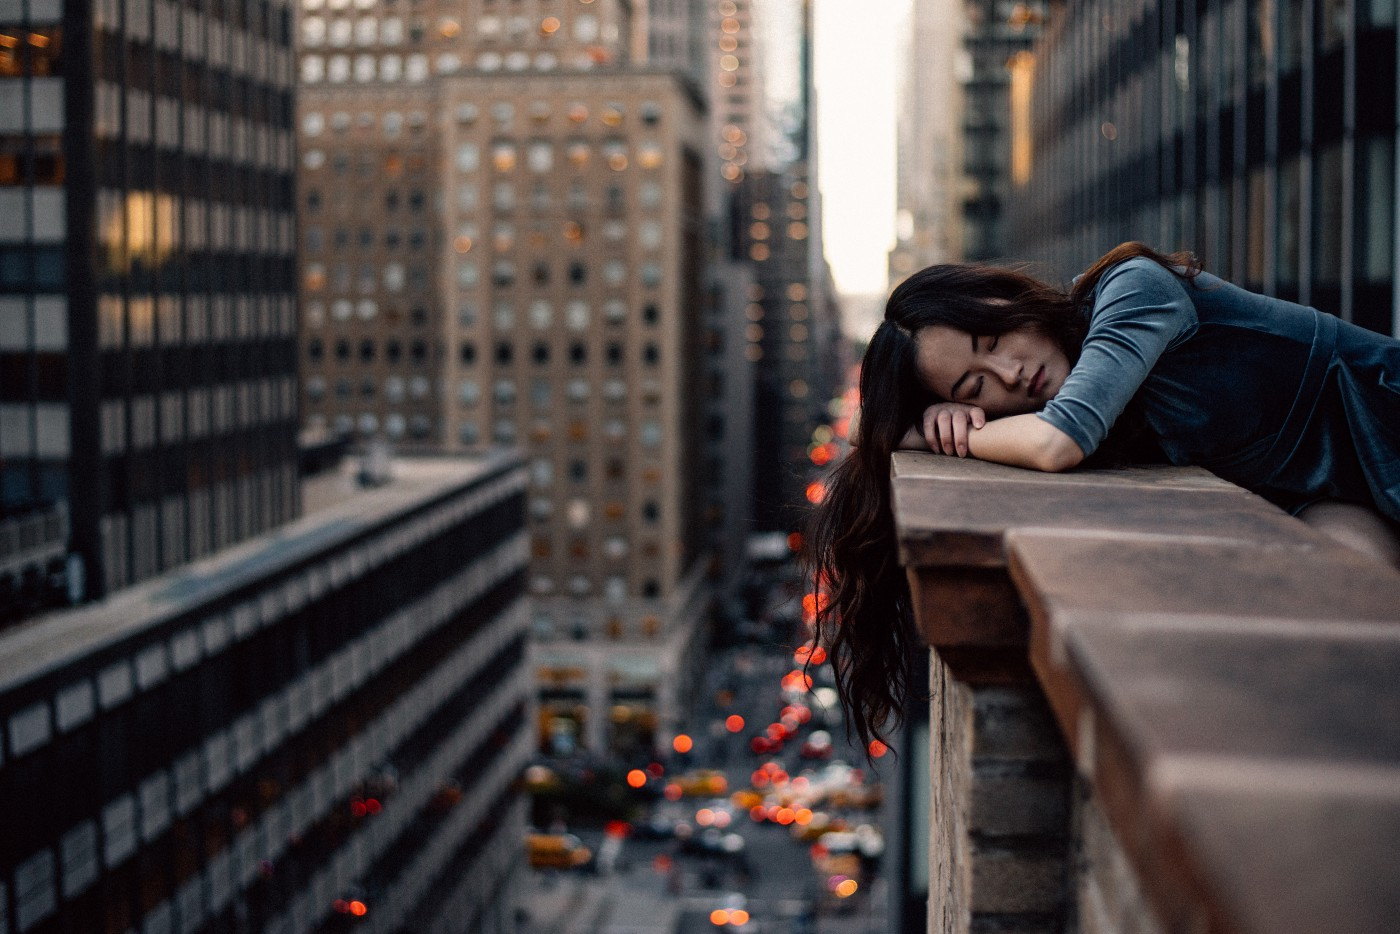 A woman resting her head wearily on a balcony overlooking a city.